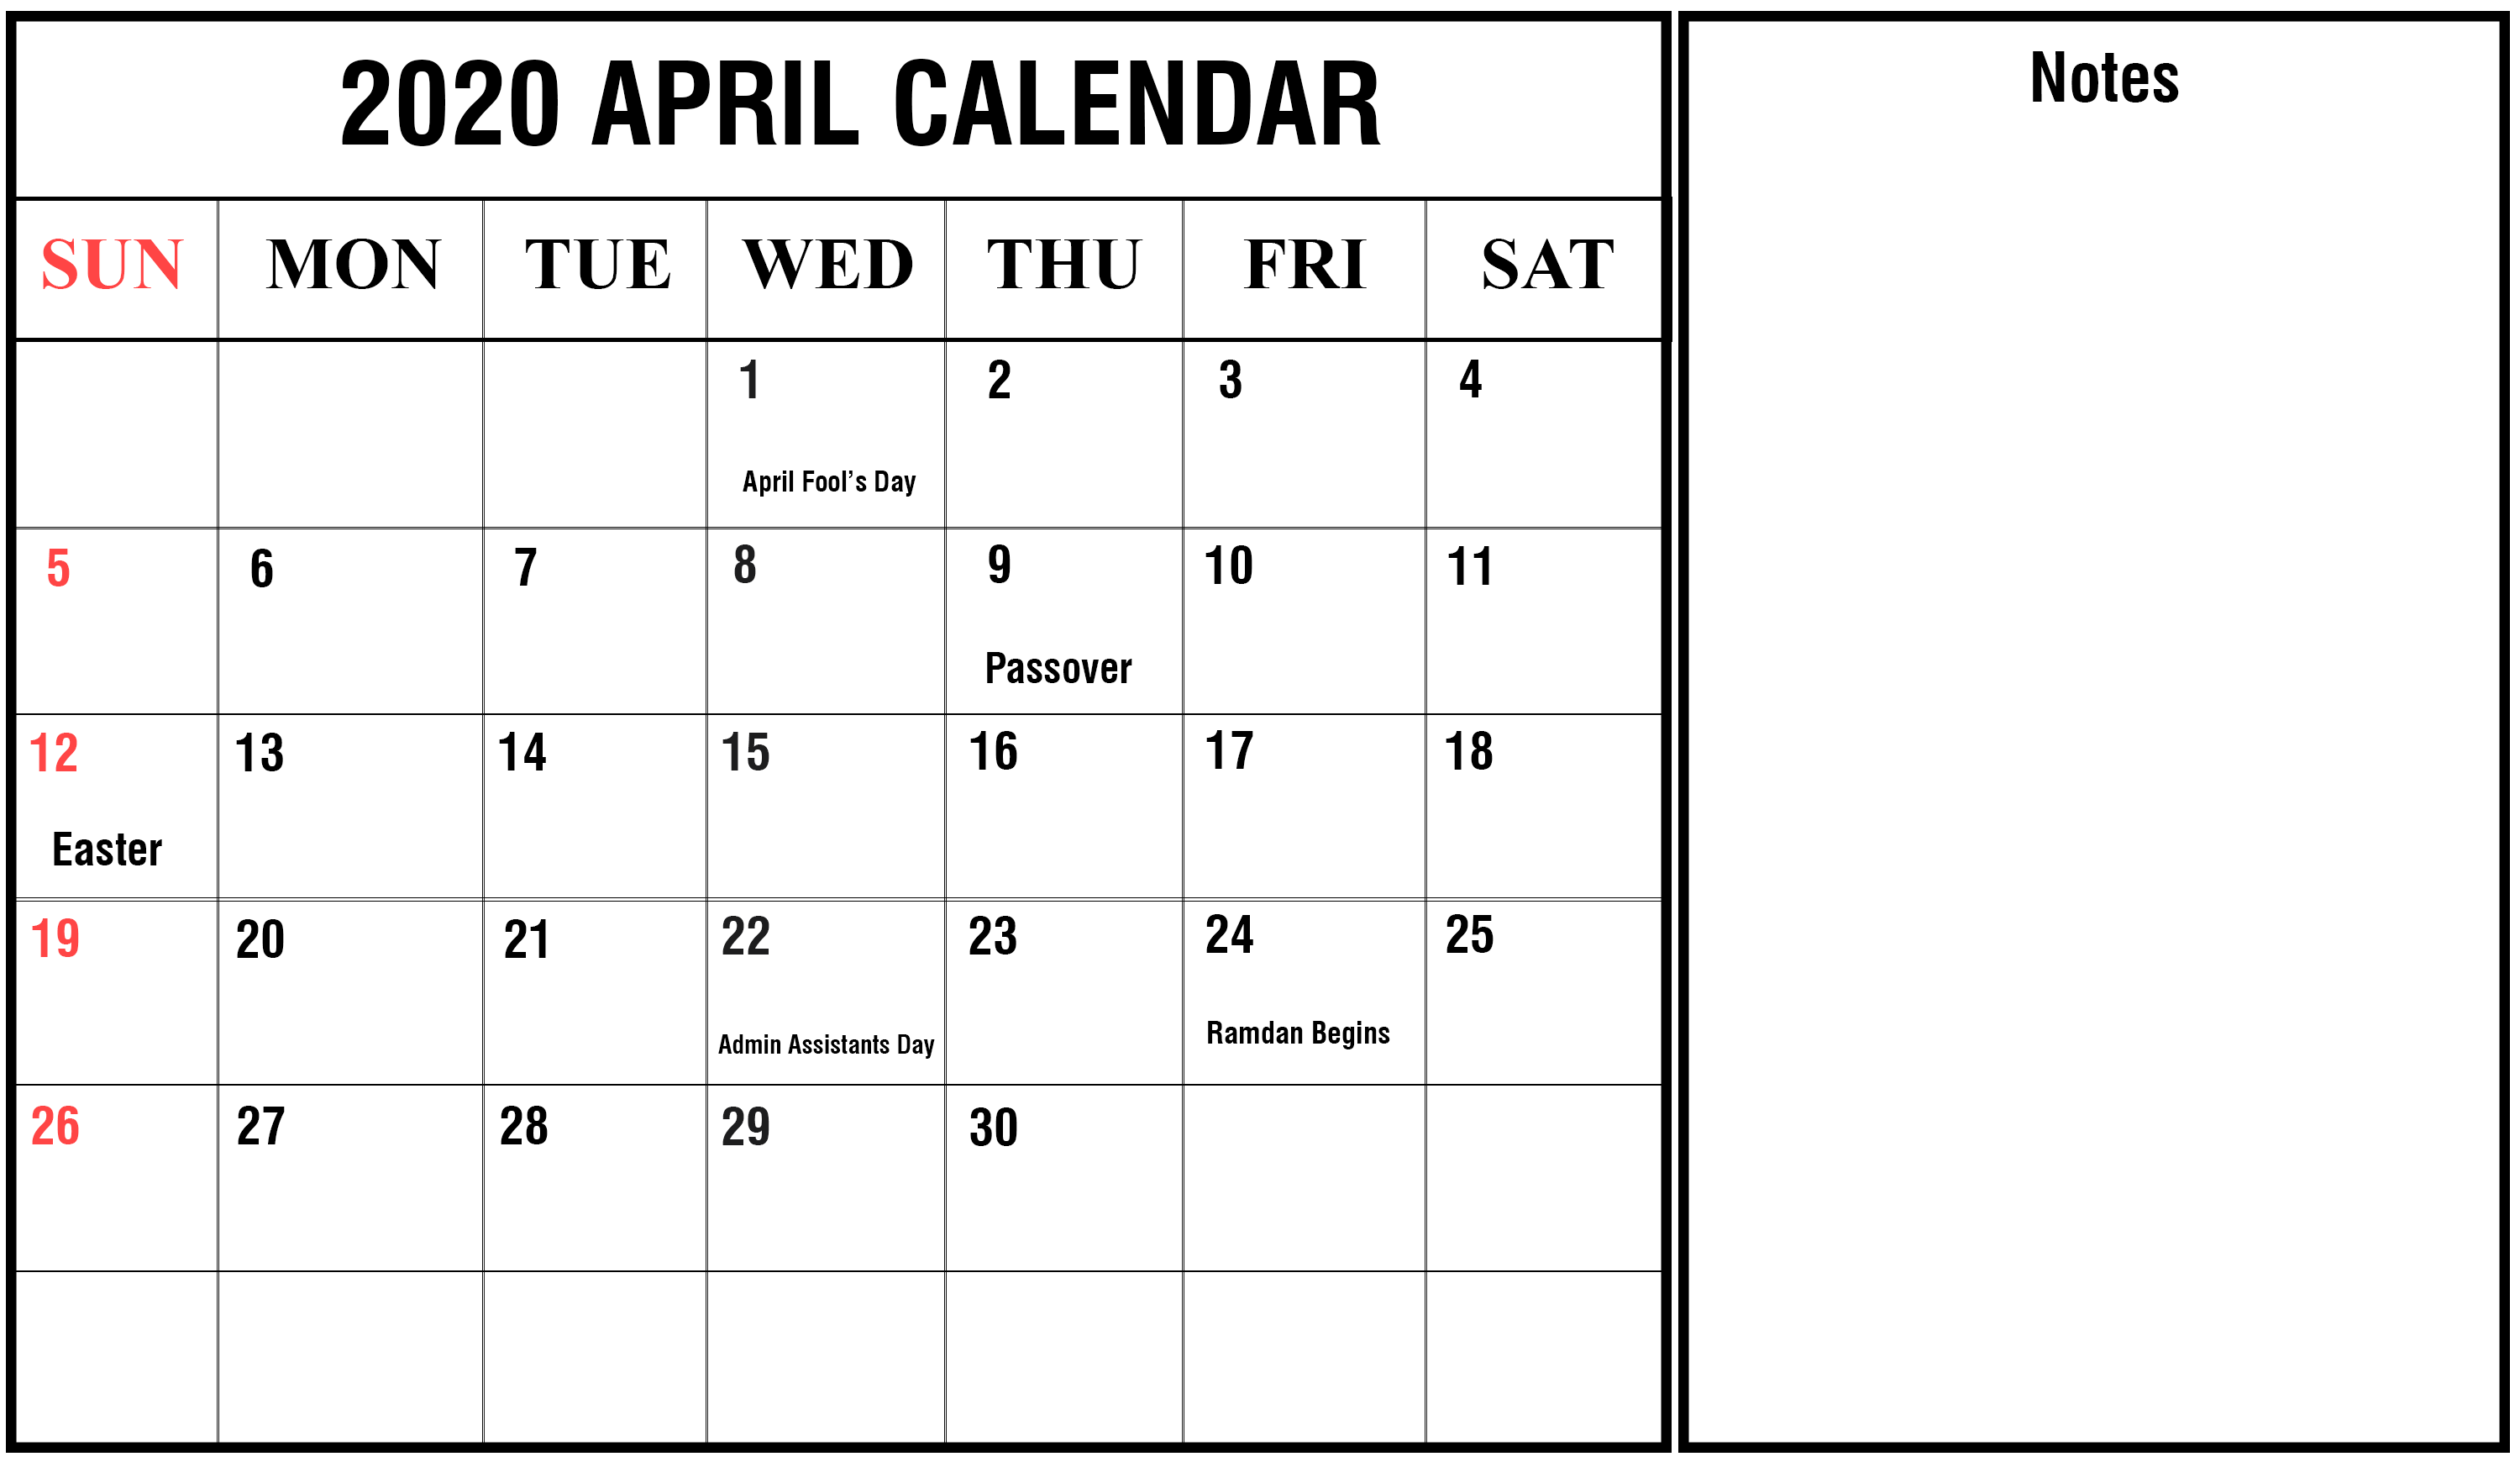 April 2020 Calendar With Holidays Calendar Marketing calendar 3000x1740